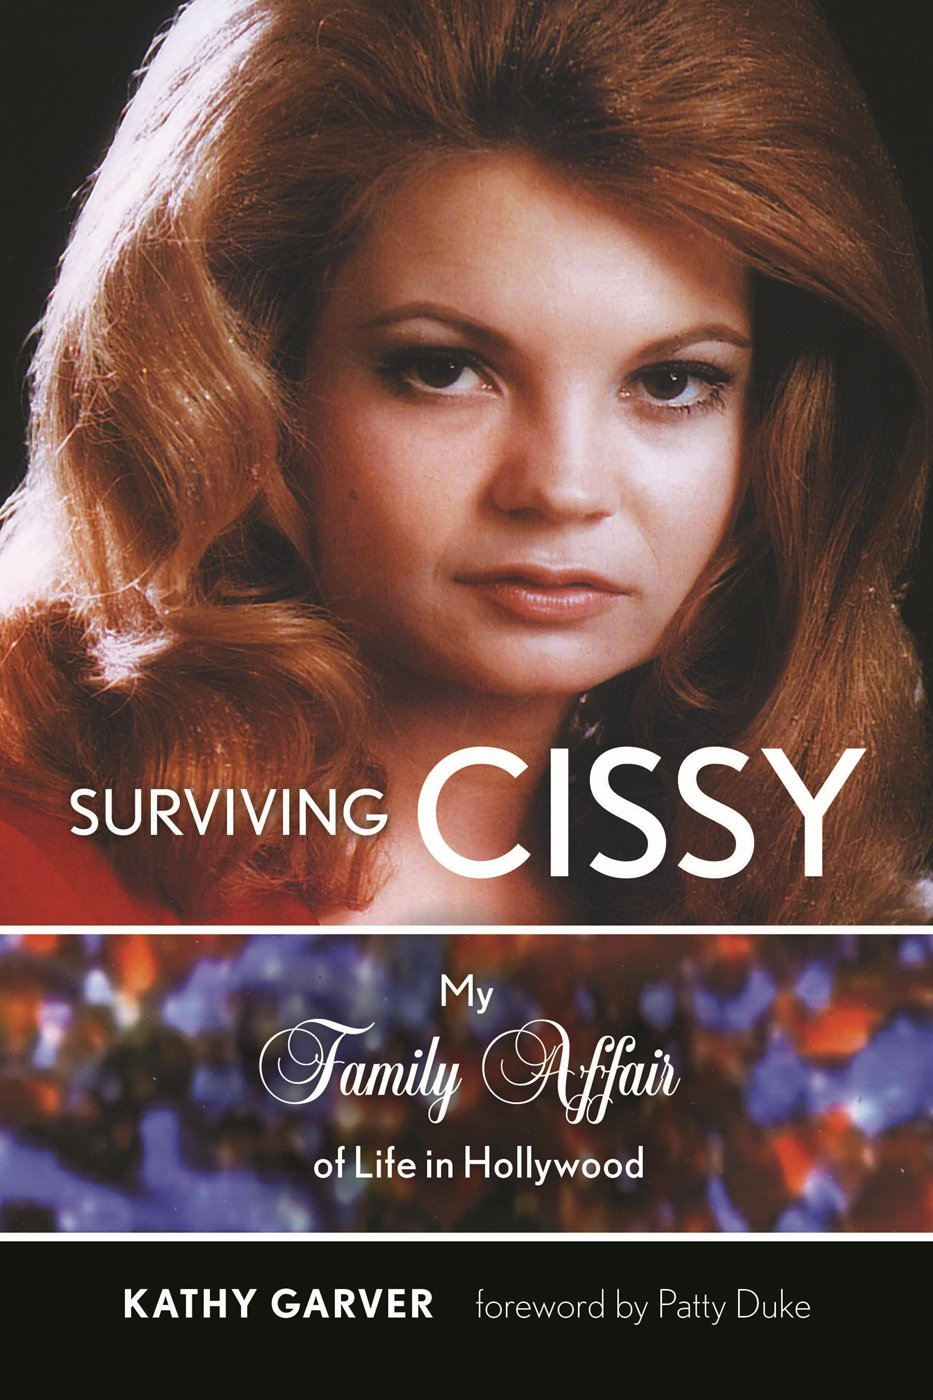 SurvivingCissy_medium hi res